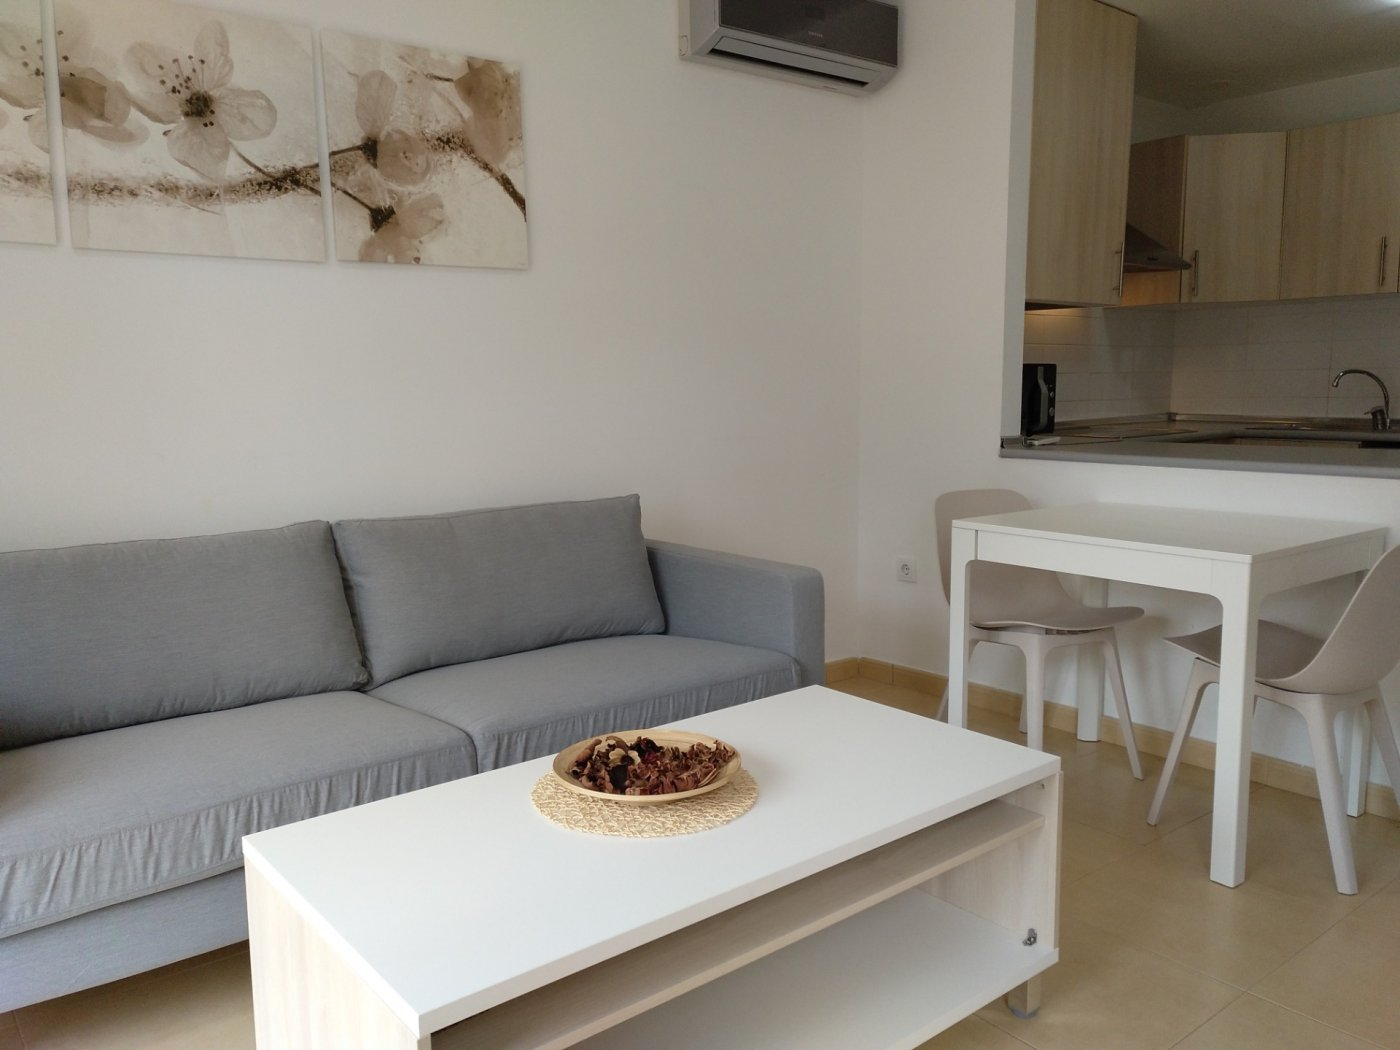 Gallery Image 2 of Flat For rent in Condado De Alhama, Alhama De Murcia With Pool